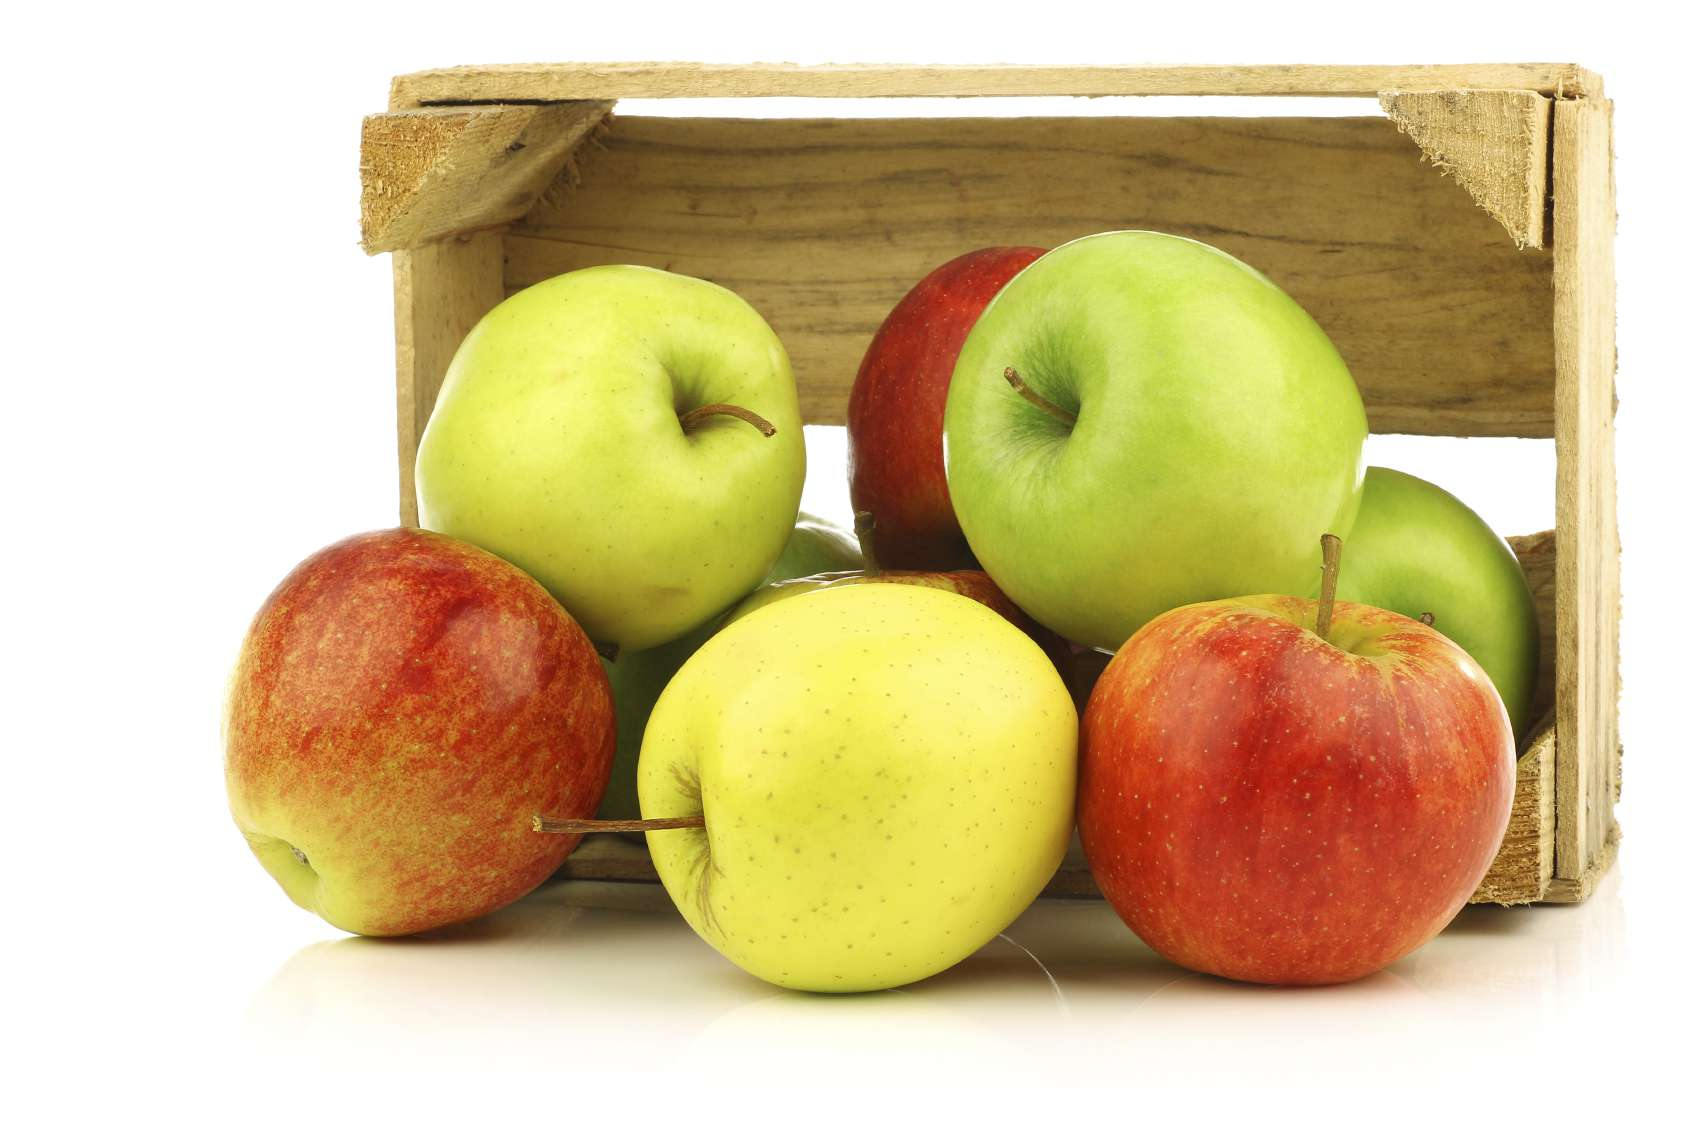 Apples pouring out of a crate